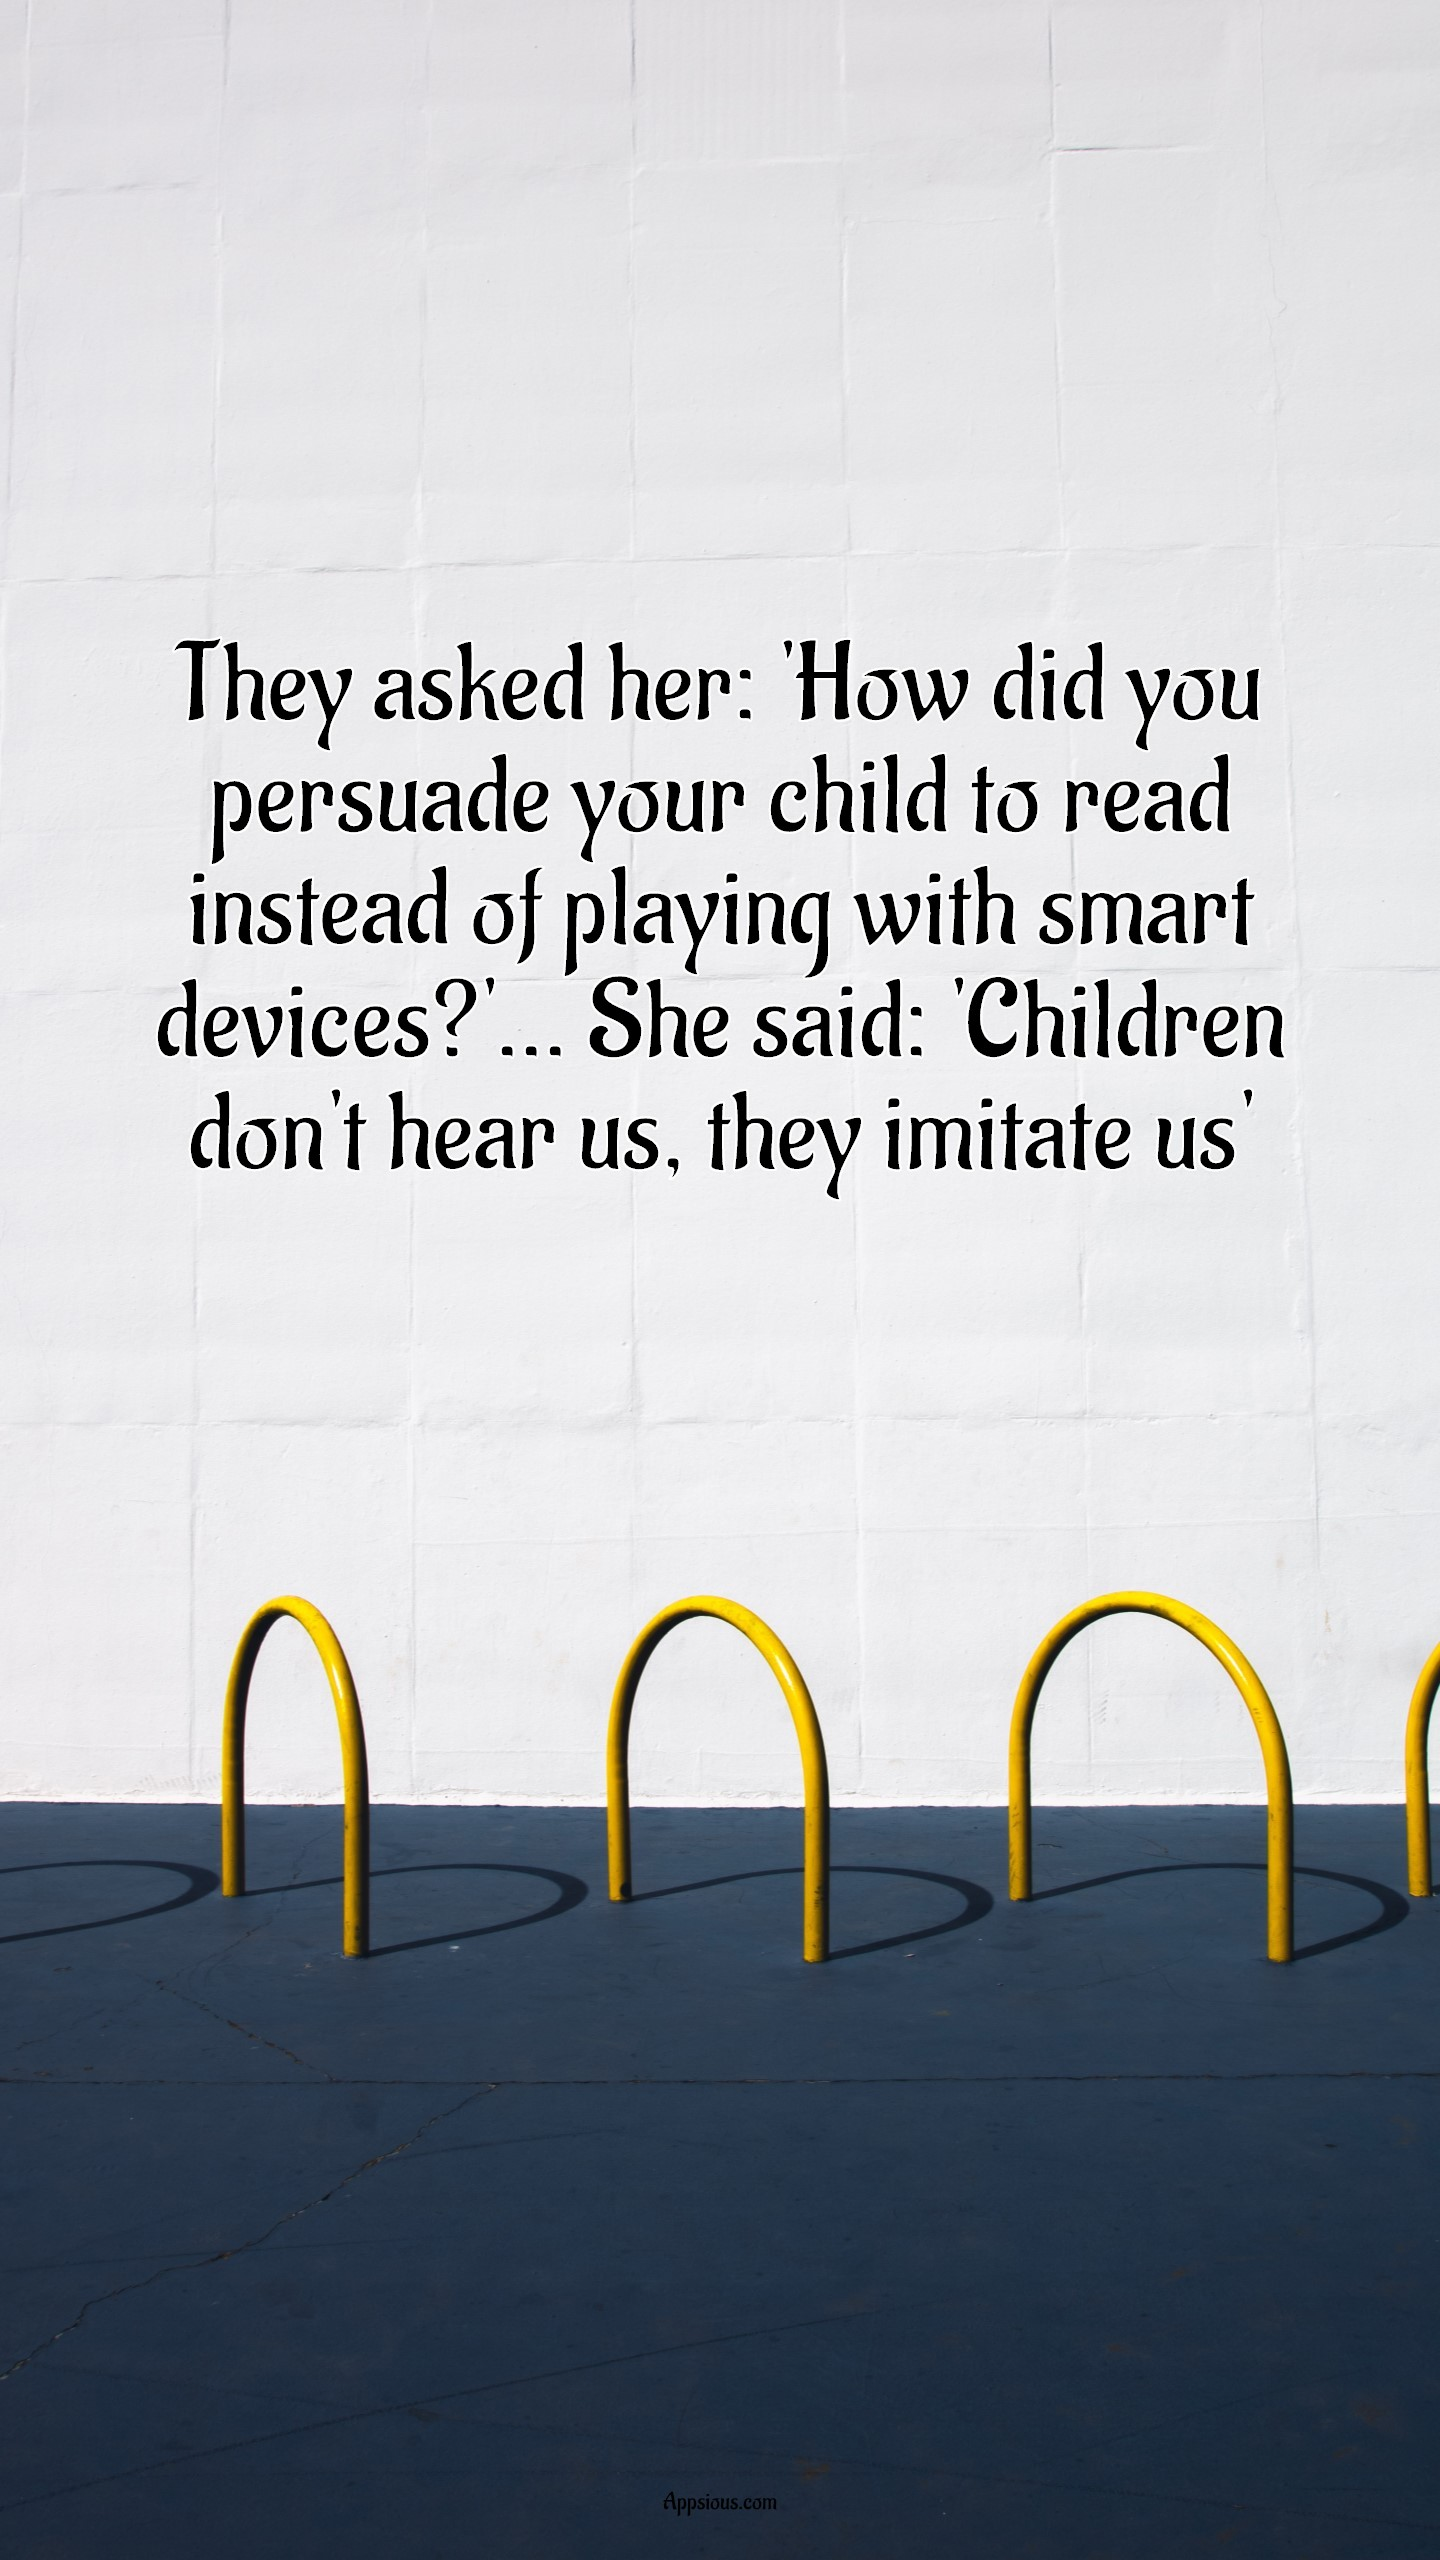 They asked her: 'How did you persuade your child to read instead of playing with smart devices?'... She said: 'Children don't hear us, they imitate us'